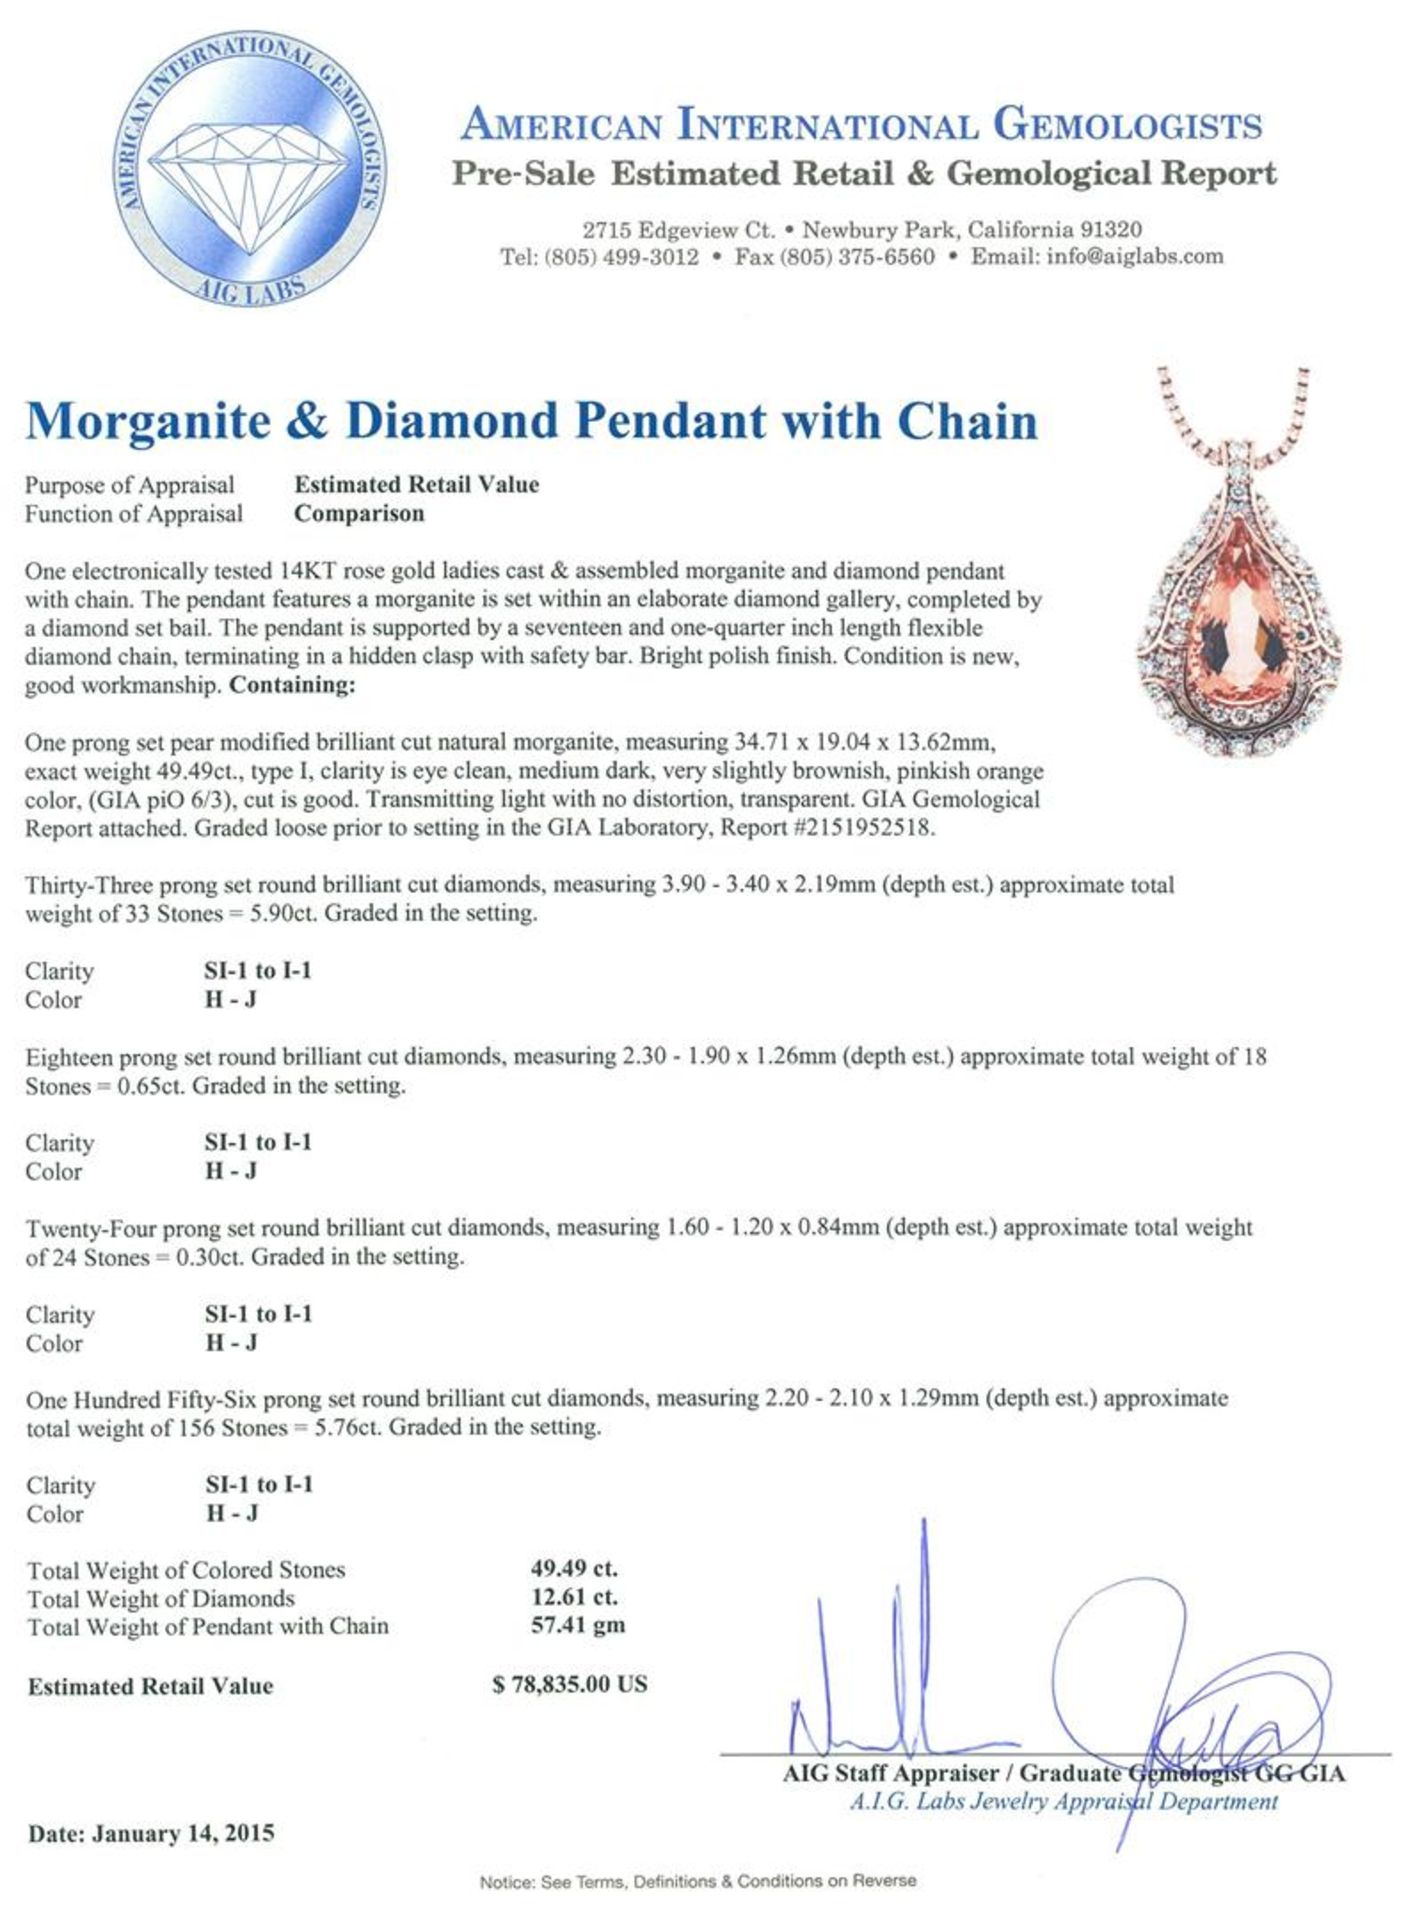 14KT Rose Gold GIA Certified 49.49ct Morganite and Diamond Pendant With Chain - Image 3 of 4